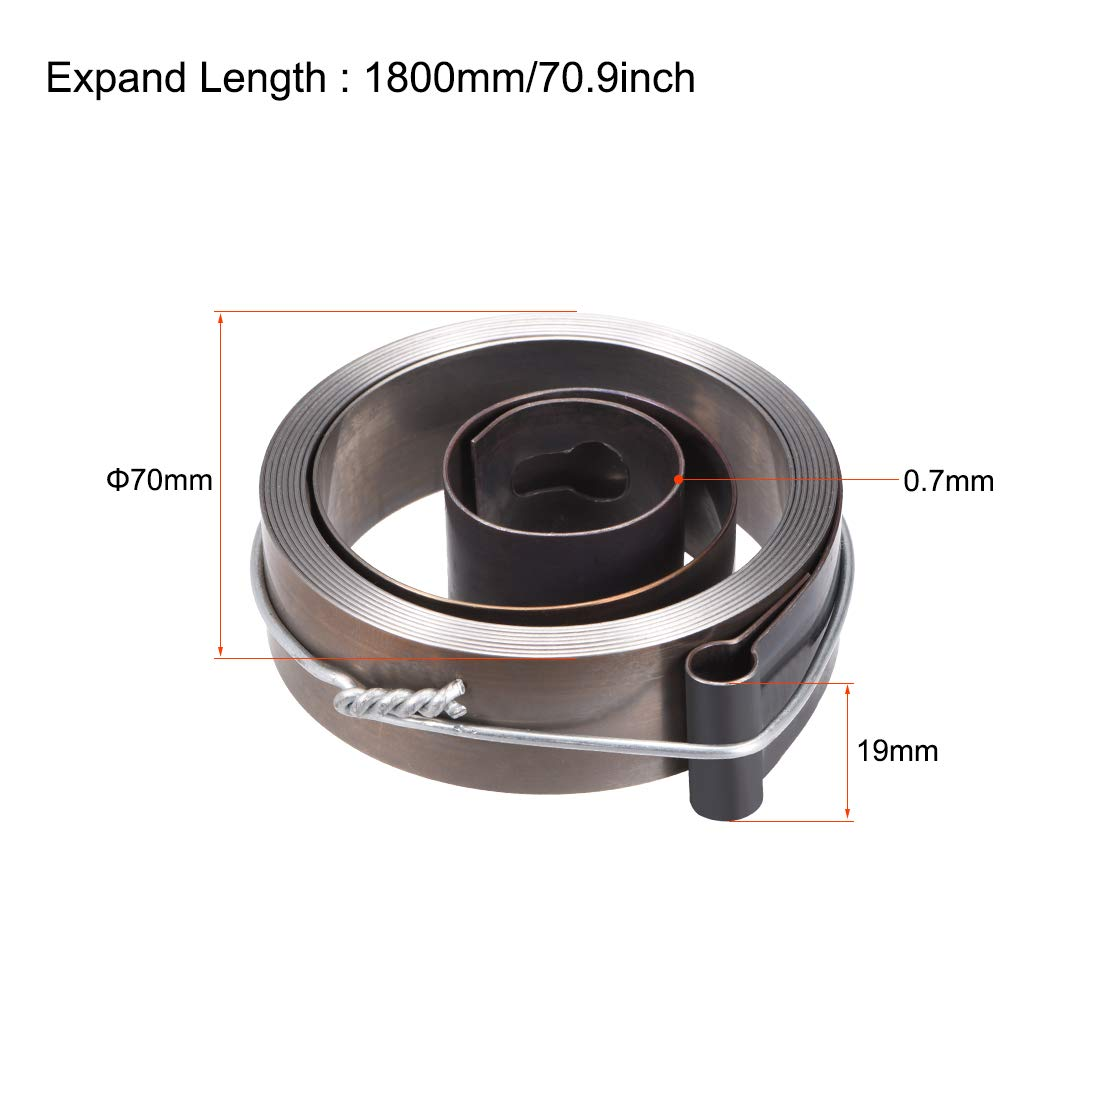 sourcing map Drill Press Spring Drill Press Quill Feed Return Coil Spring Assembly Spring Steel Chemical Blackening Finish 1540mm Expand Long 49 x 12 x 0.7mm